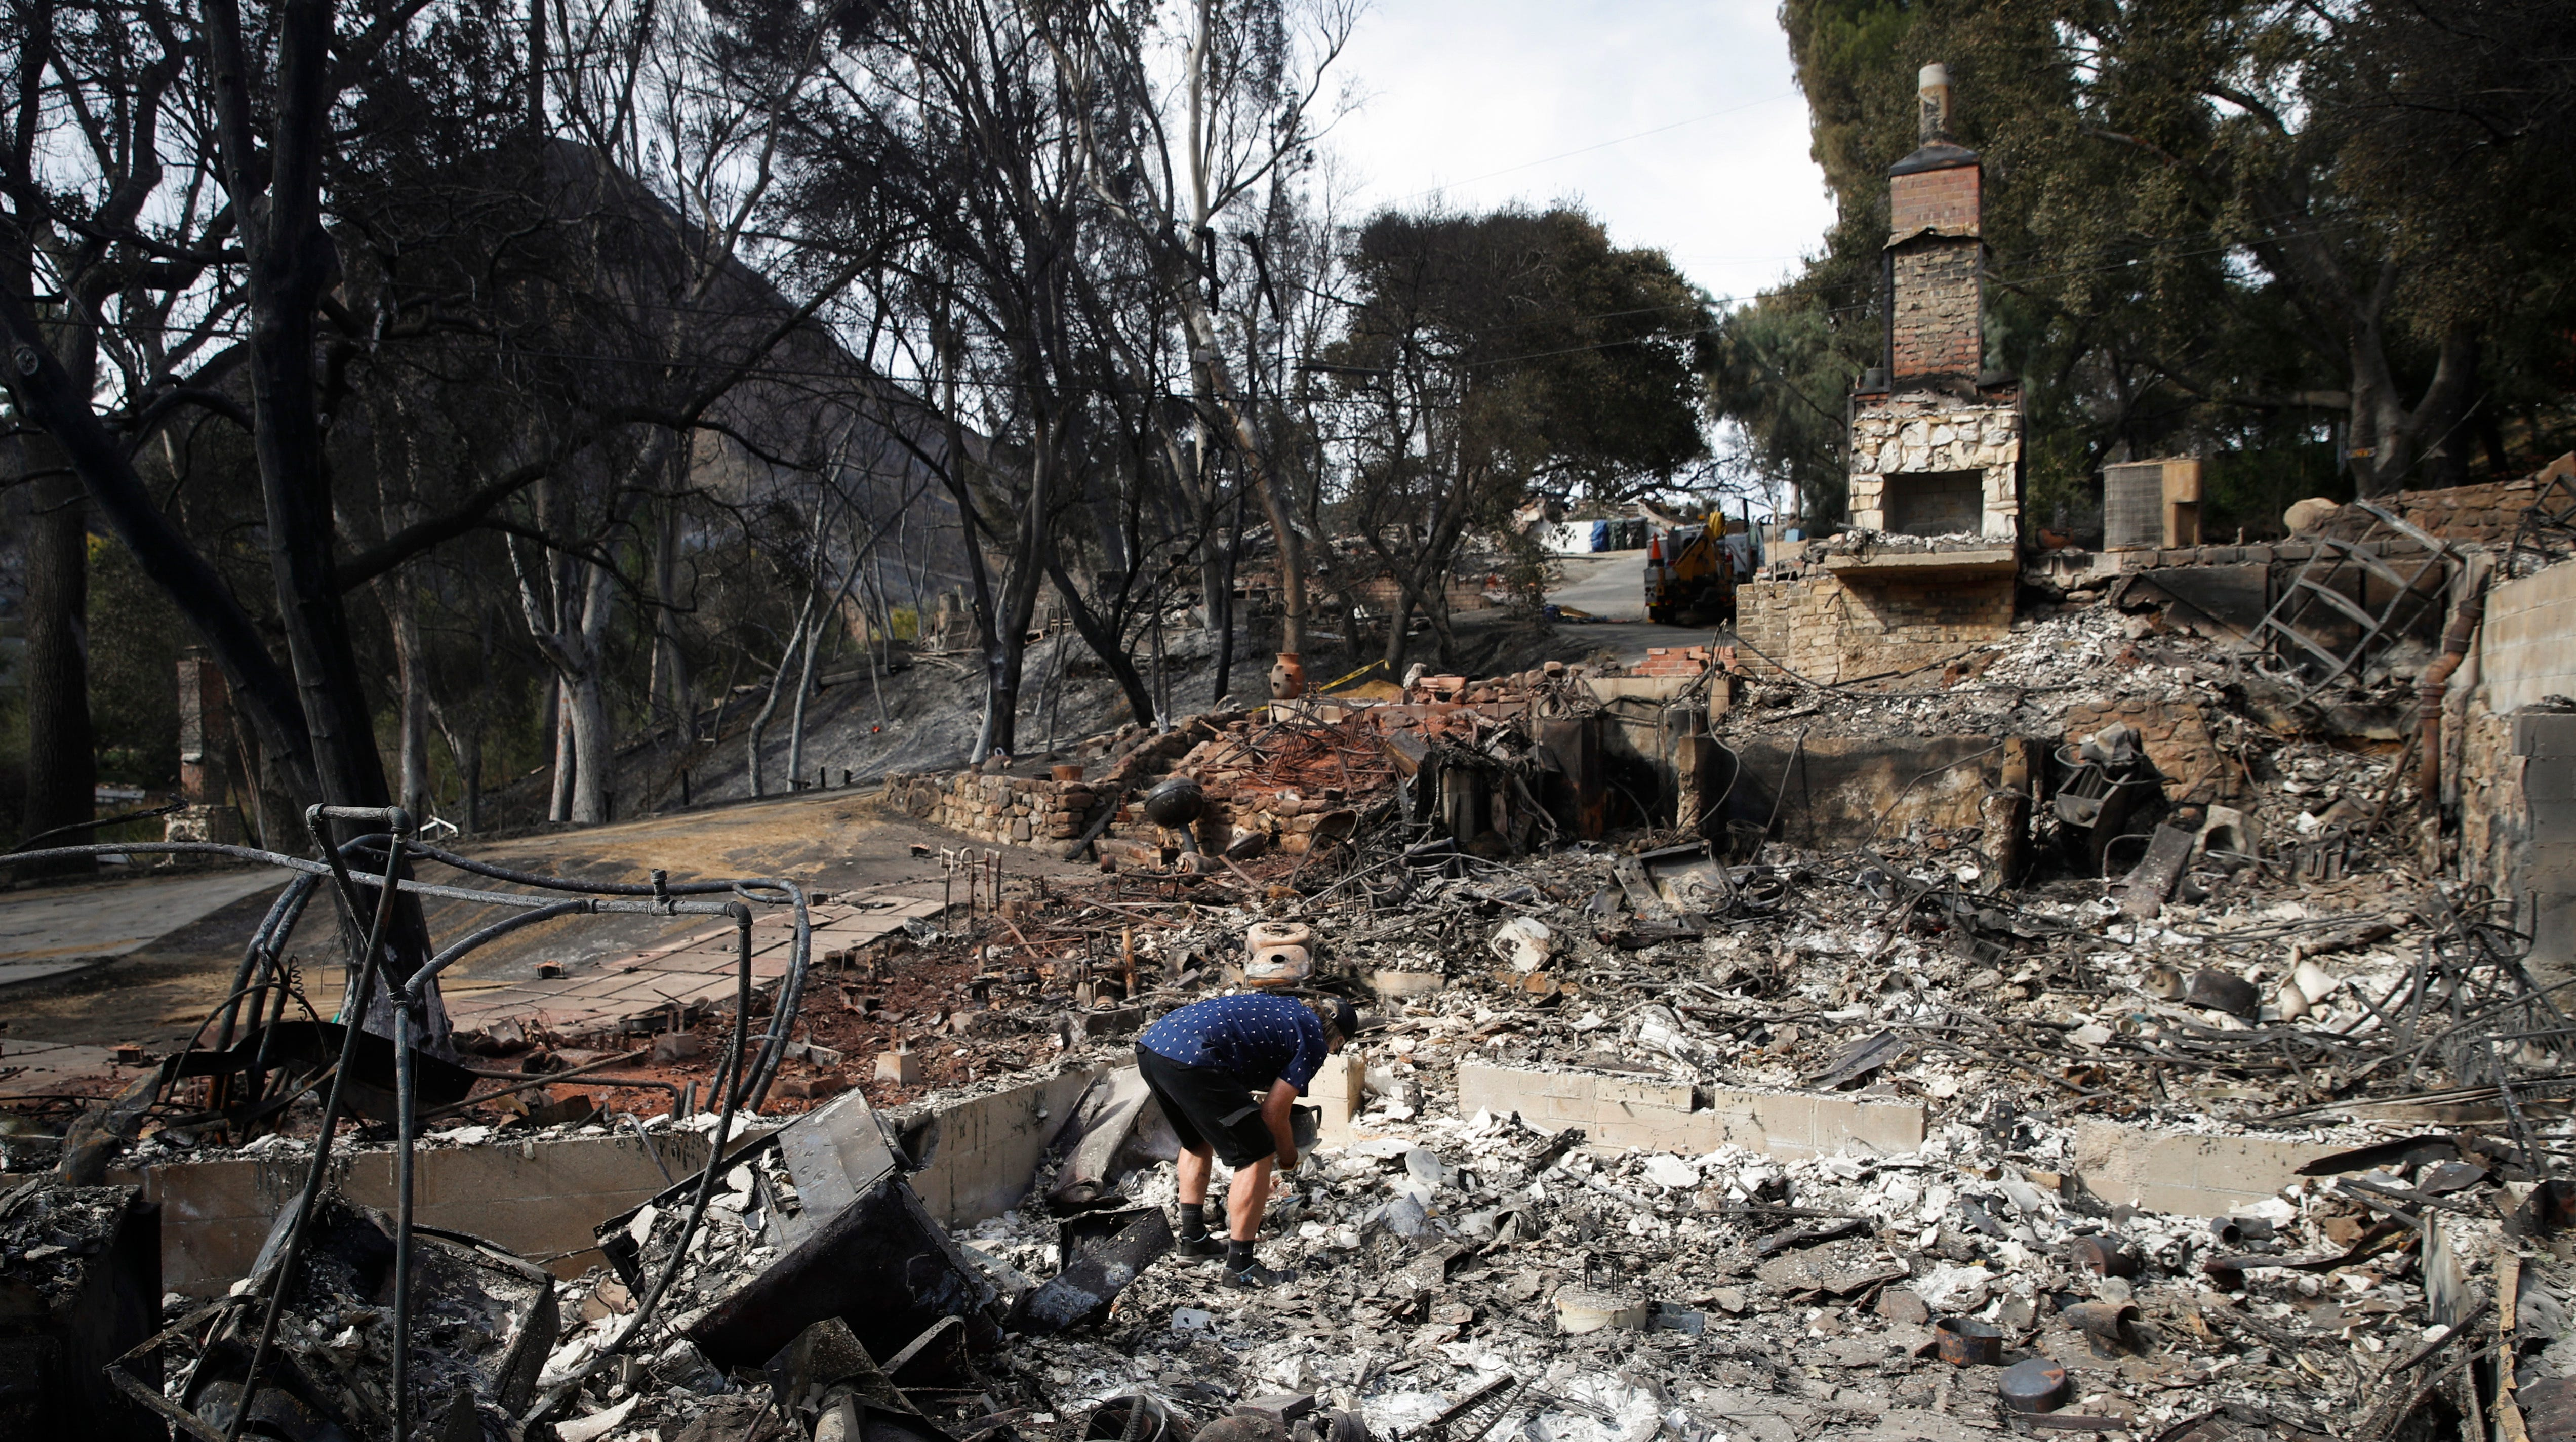 Roger Kelton searches through the remains of his mother-in-law's home leveled by the Woolsey Fire Tuesday in Agoura Hills.